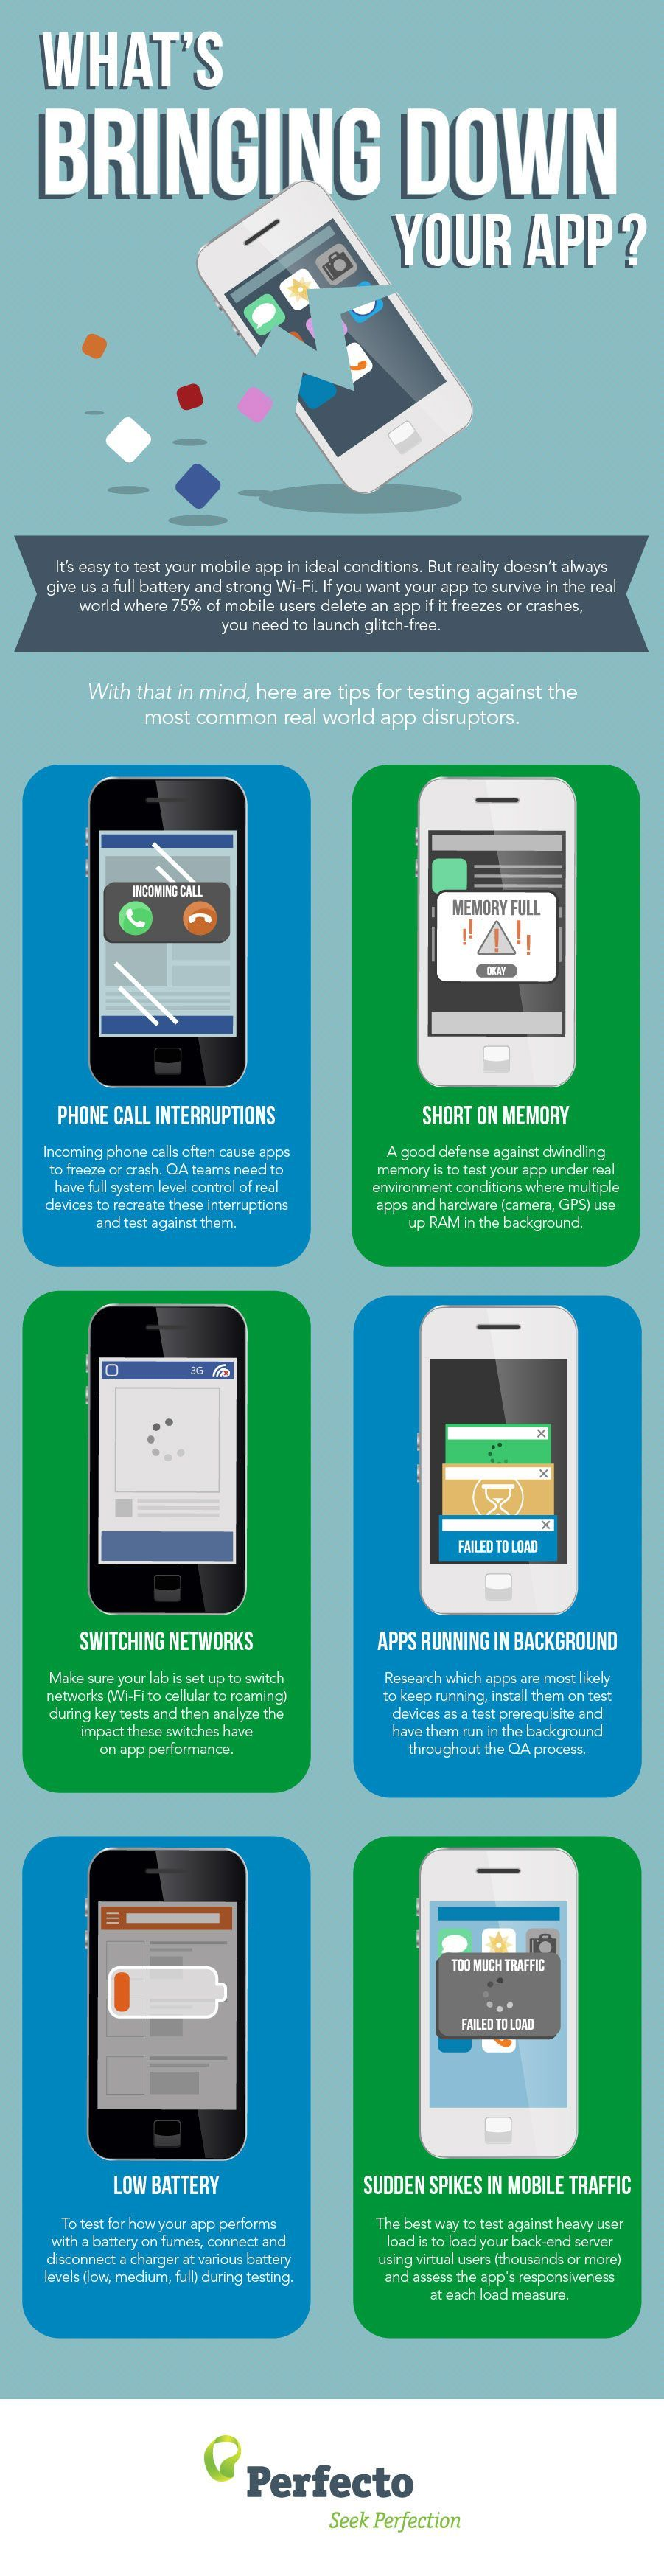 Whats Bringing Down Your Mobile App? Infographic Visualistan